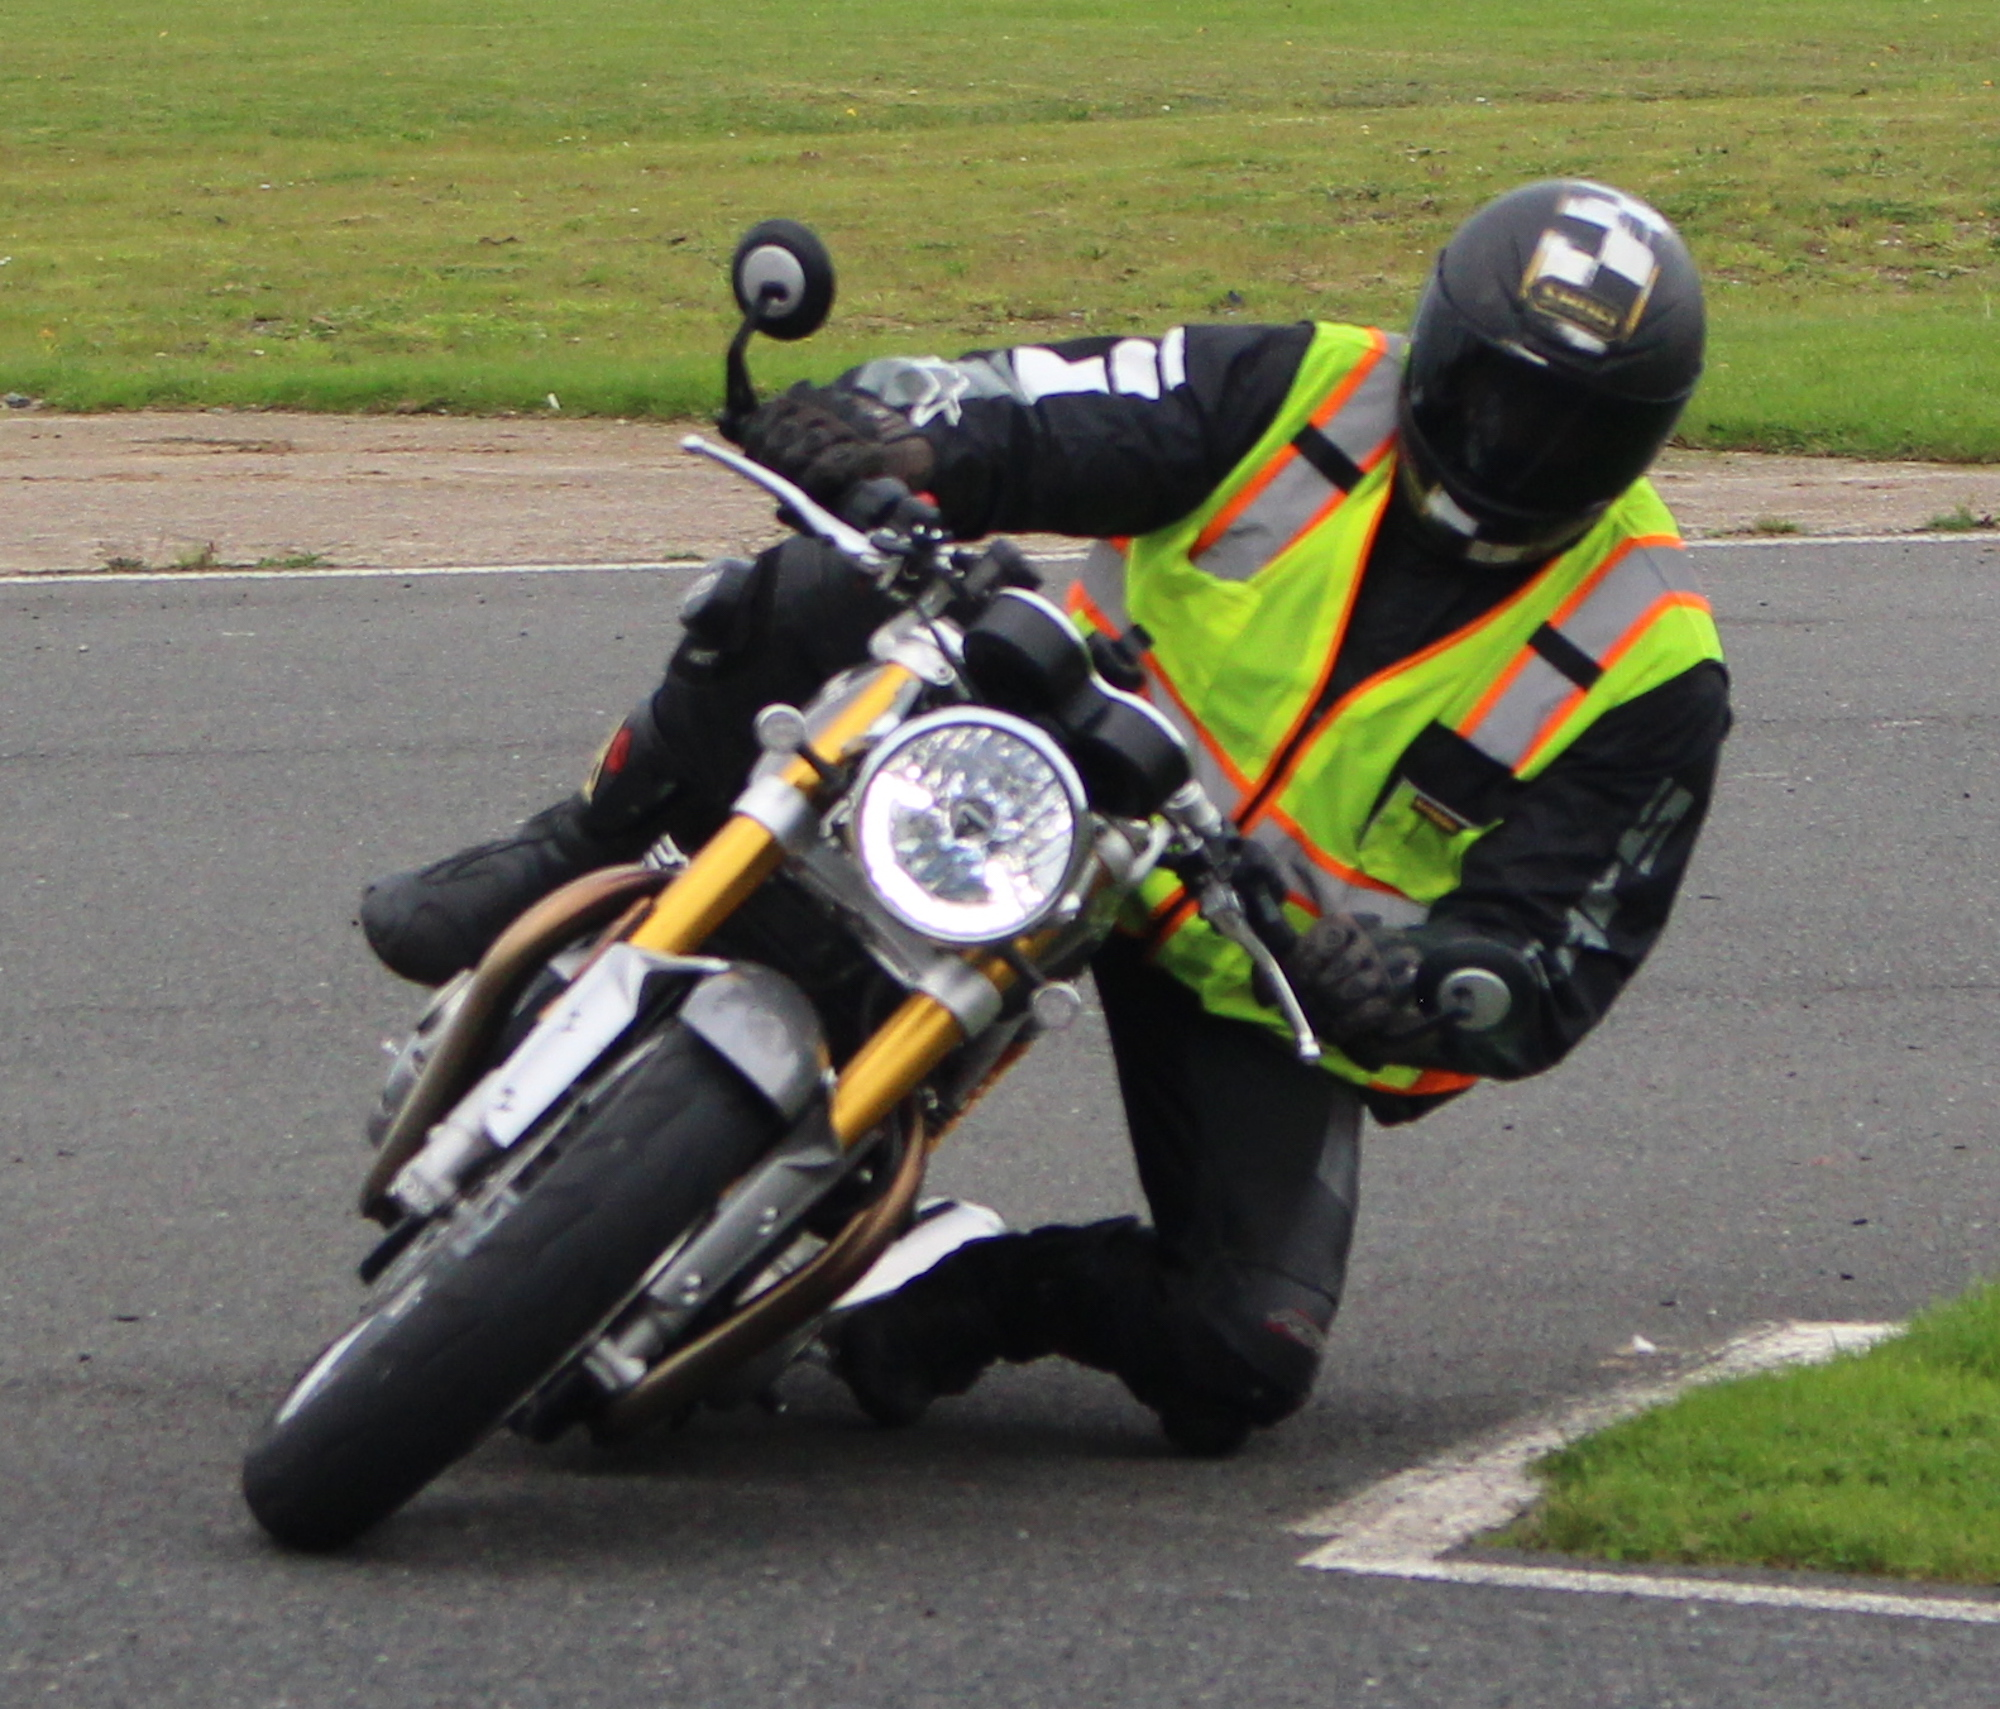 Triumph Knee down advanced motorcycle training